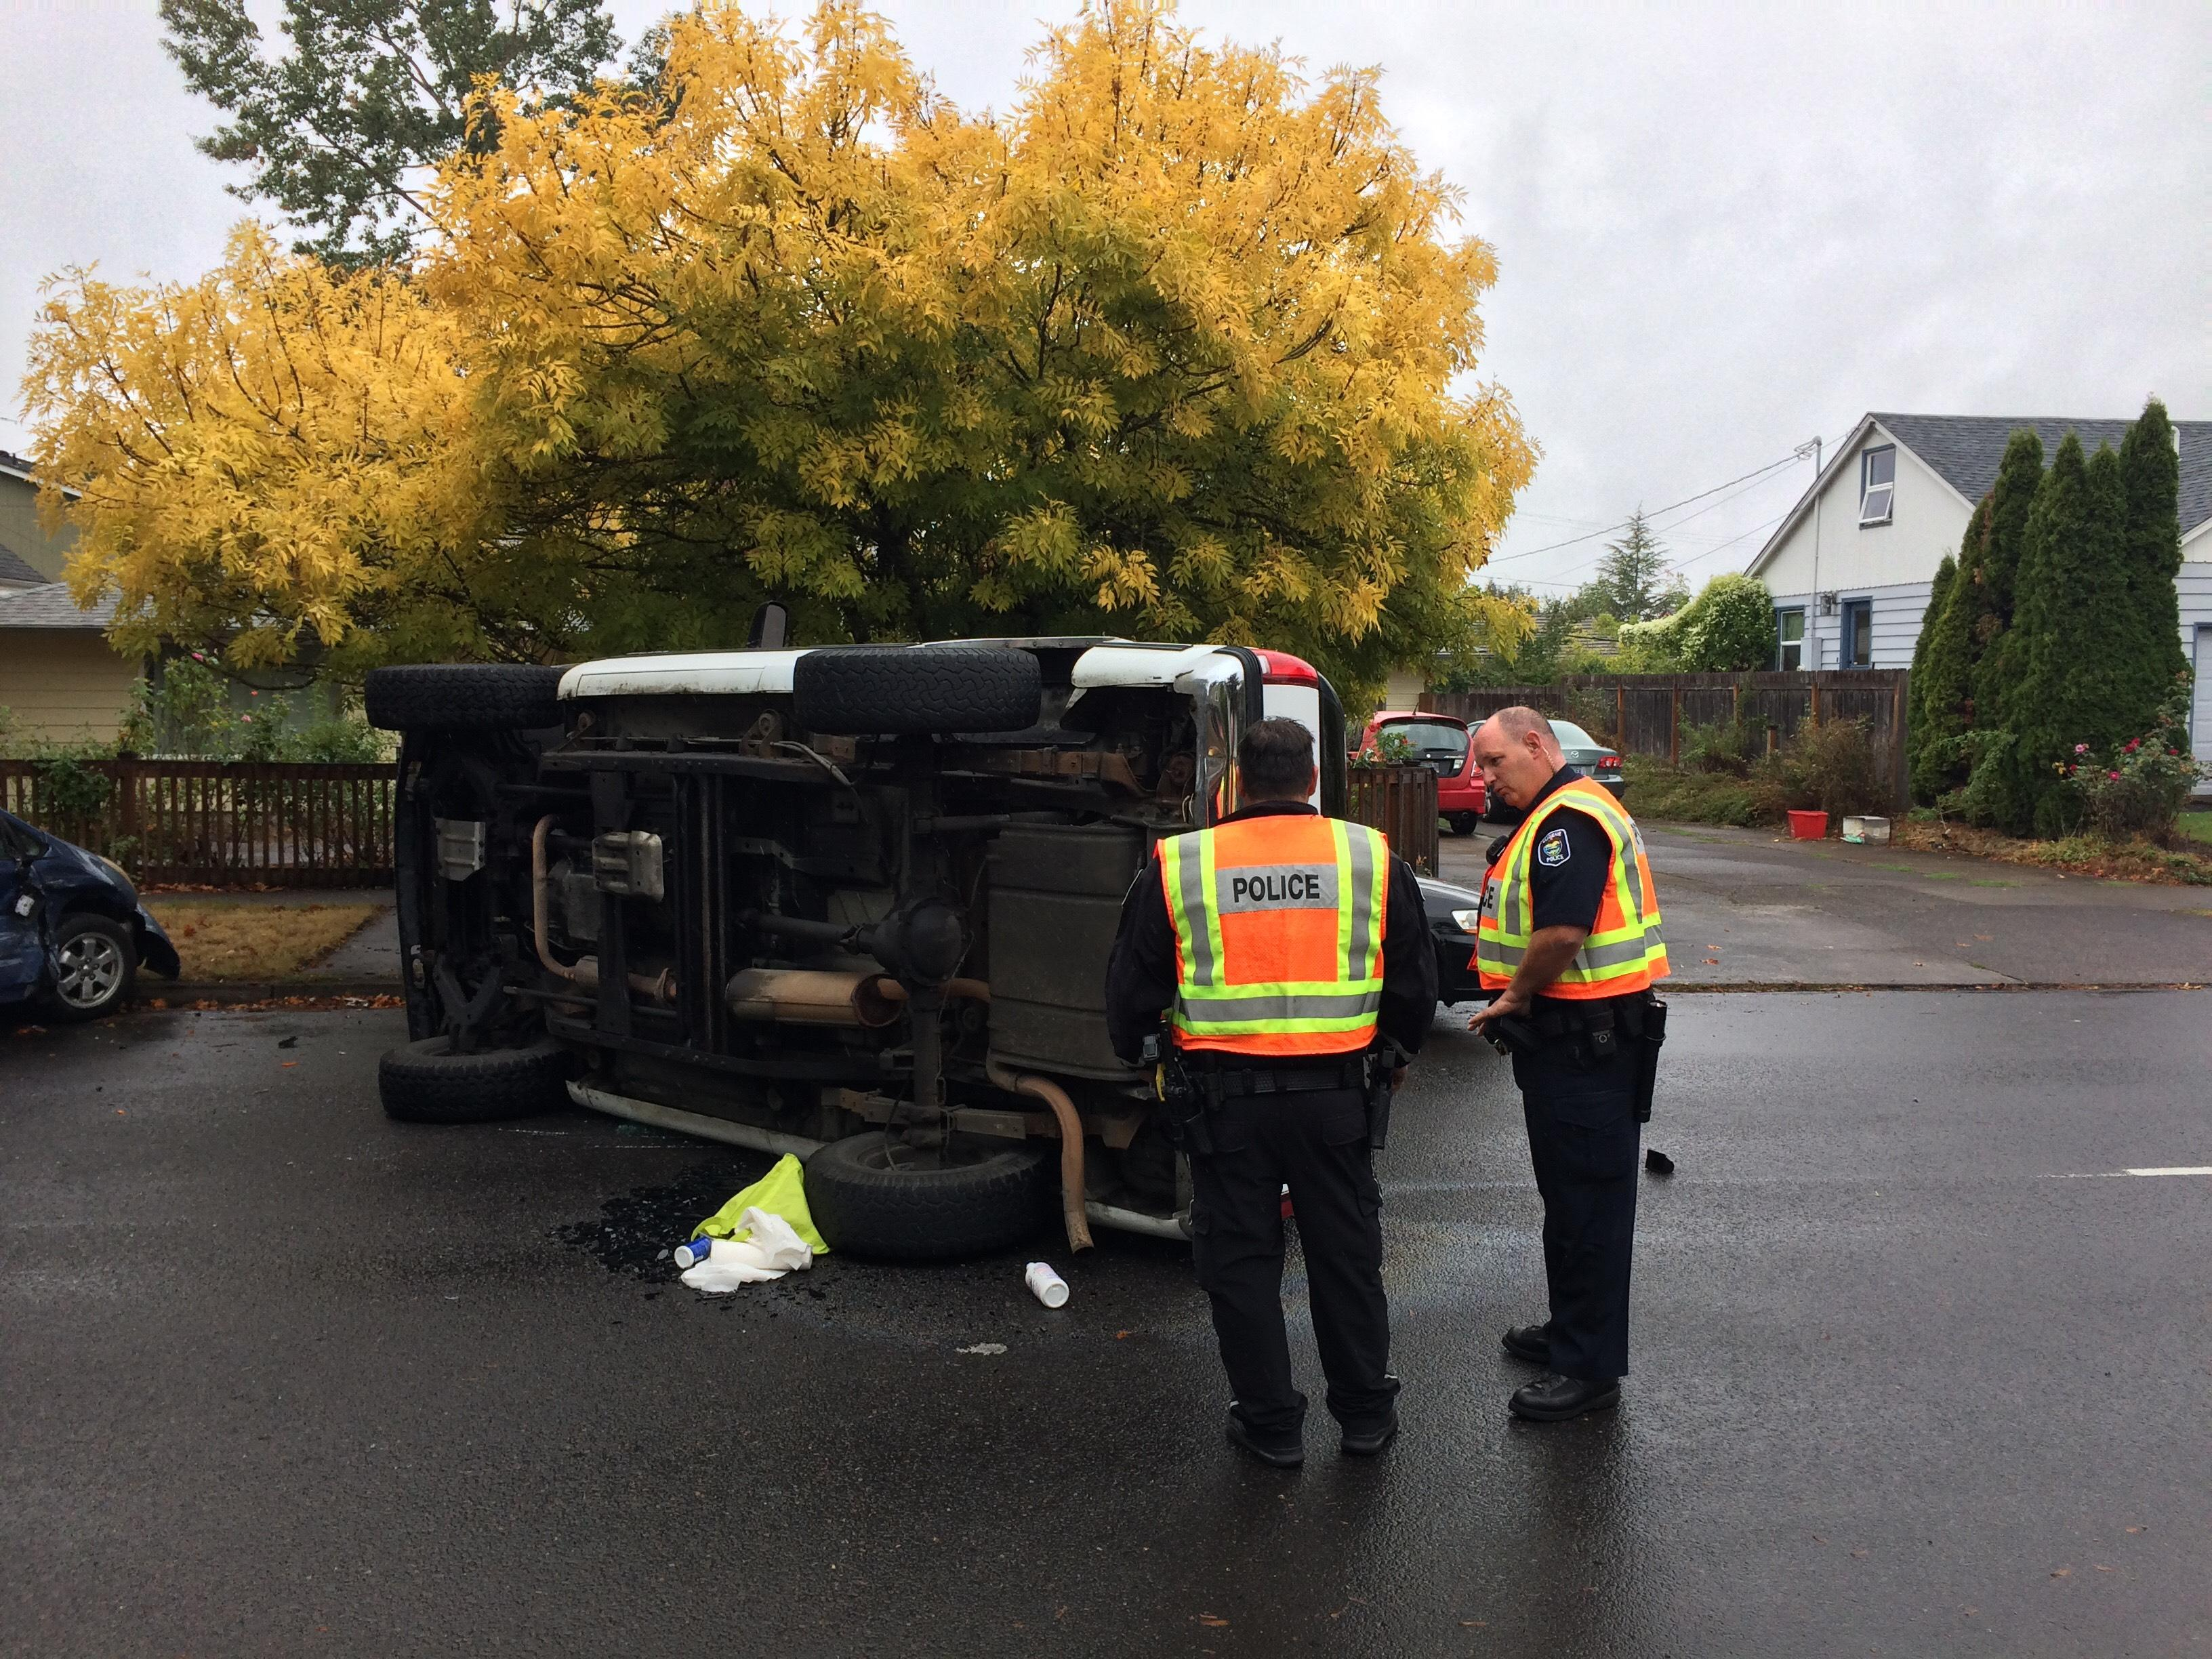 A crash involving a Toyota Prius and a GMC Yukon left the SUV on its side on Hilyard Street near 23rd Avenue in Eugene on Friday. No word yet on whether anyone was injured or the cause of the crash. This story will be updated.